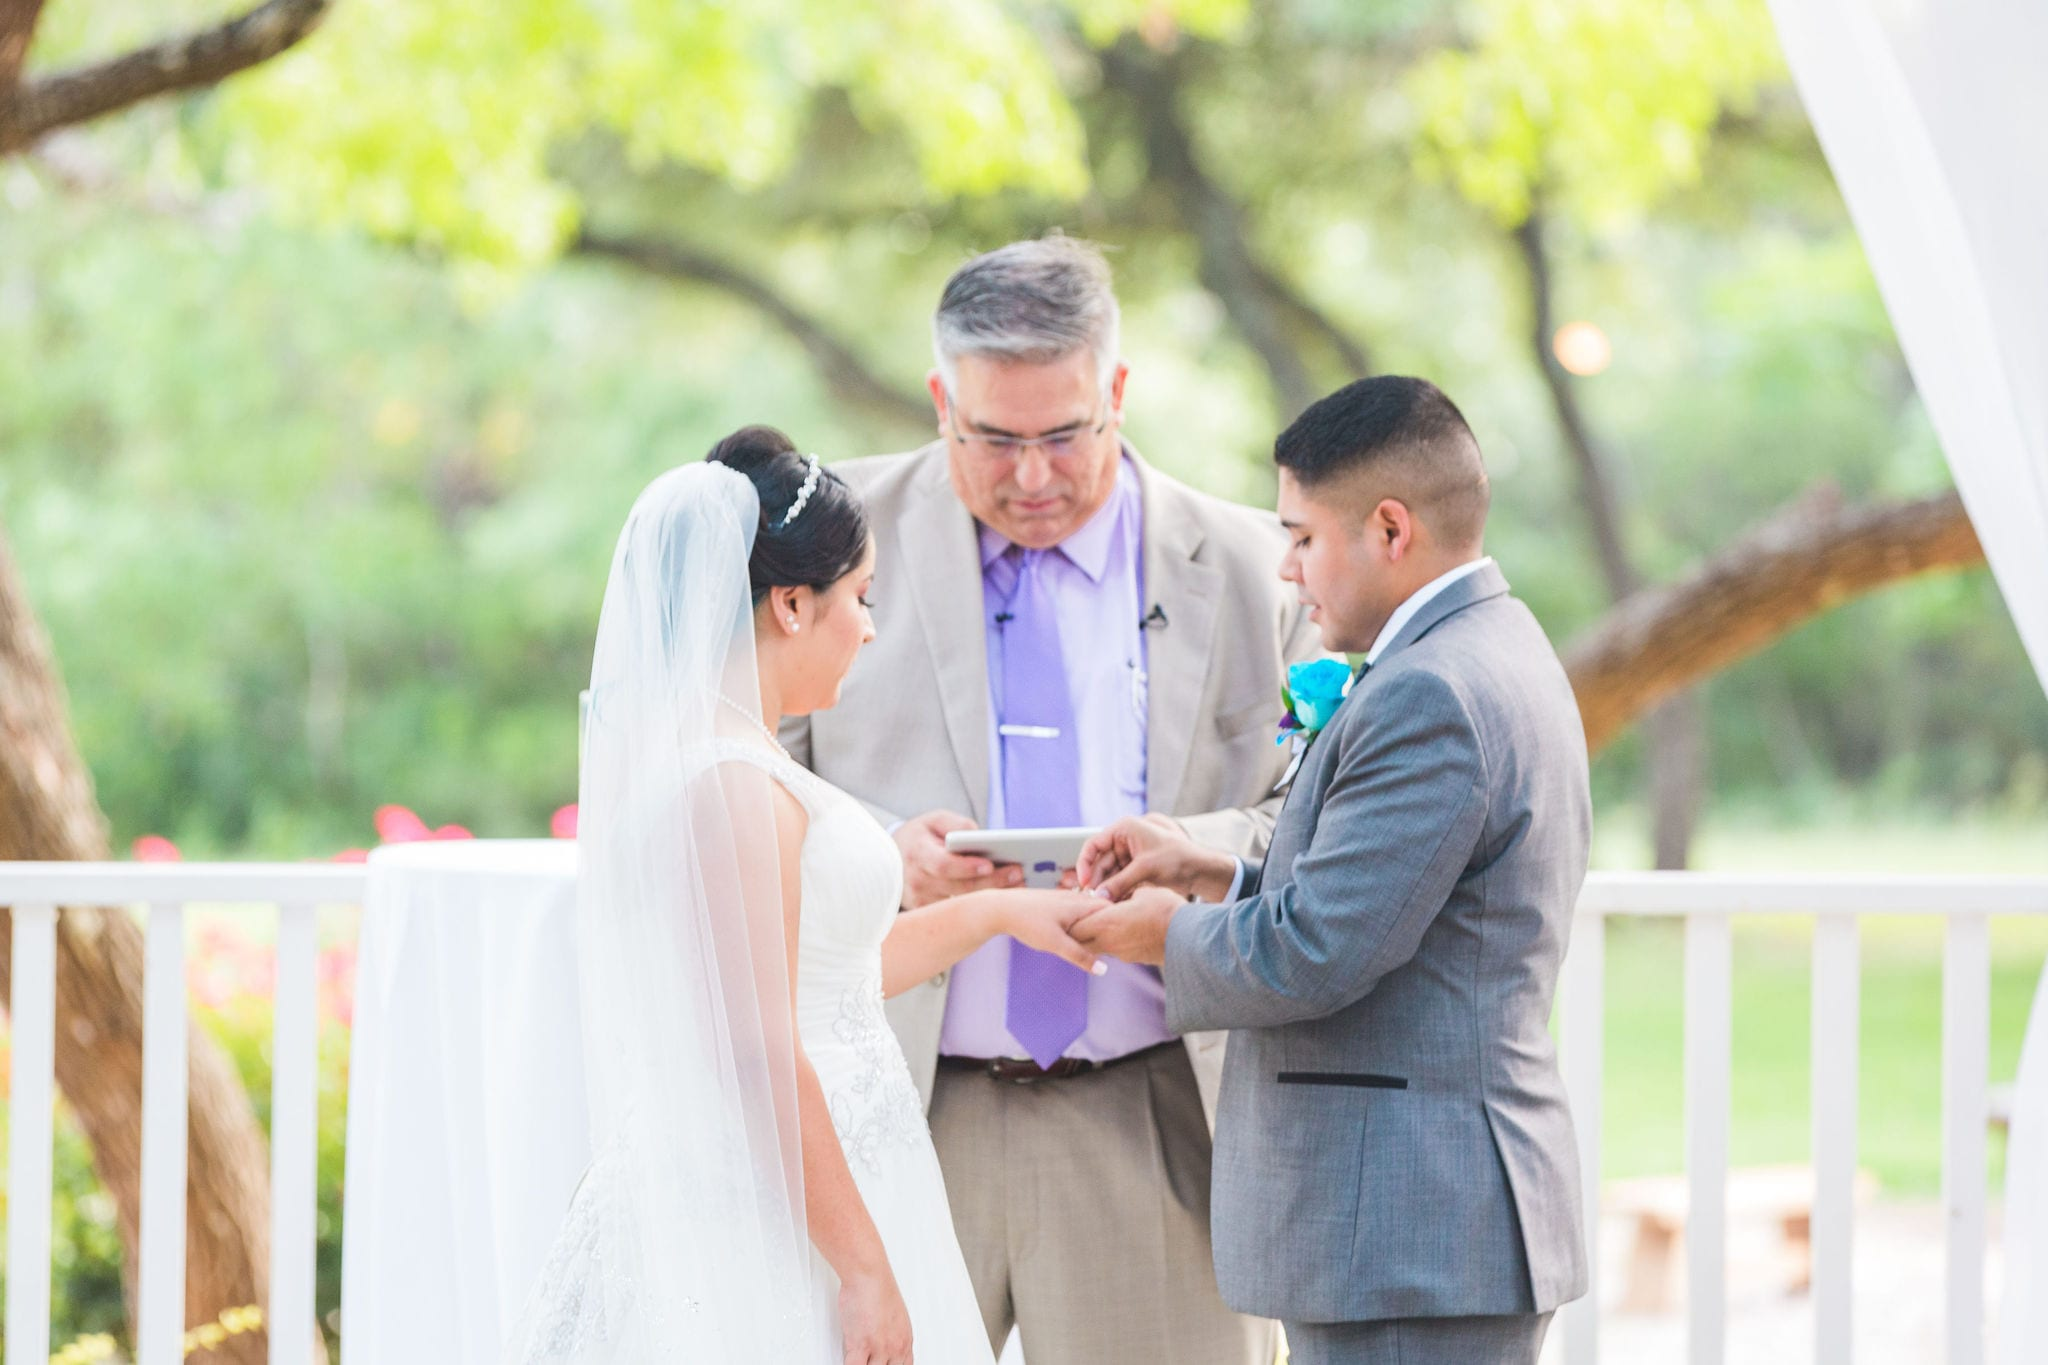 Alex and Adrien Wedding at The Gardens at Old Town ceremony ring exchange